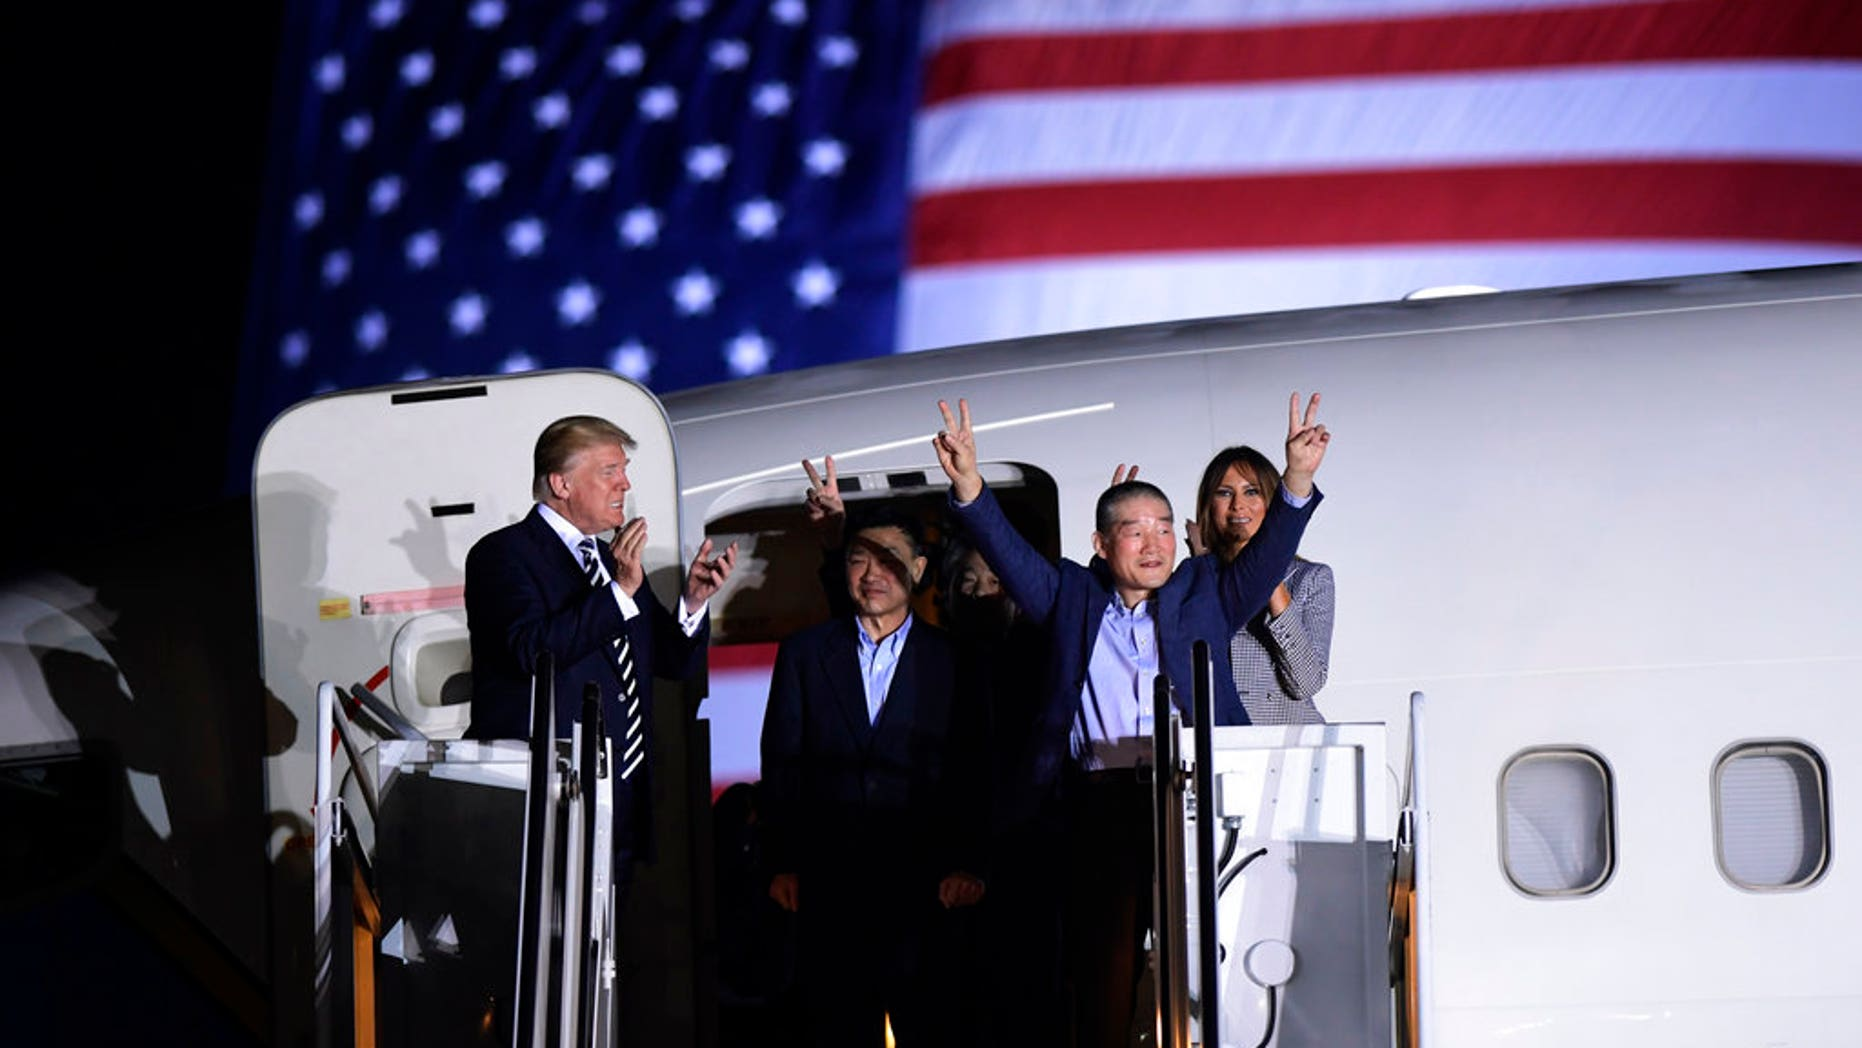 President Donald Trump, from left, greets Tony Kim, Kim Hak Song, seen in the shadow, and Kim Dong Chul, three Americans detained in North Korea for more than a year, as they arrive at Andrews Air Force Base in Md., Thursday, May 10, 2018. First lady Melania Trump also greets them at right. (AP Photo/Susan Walsh)